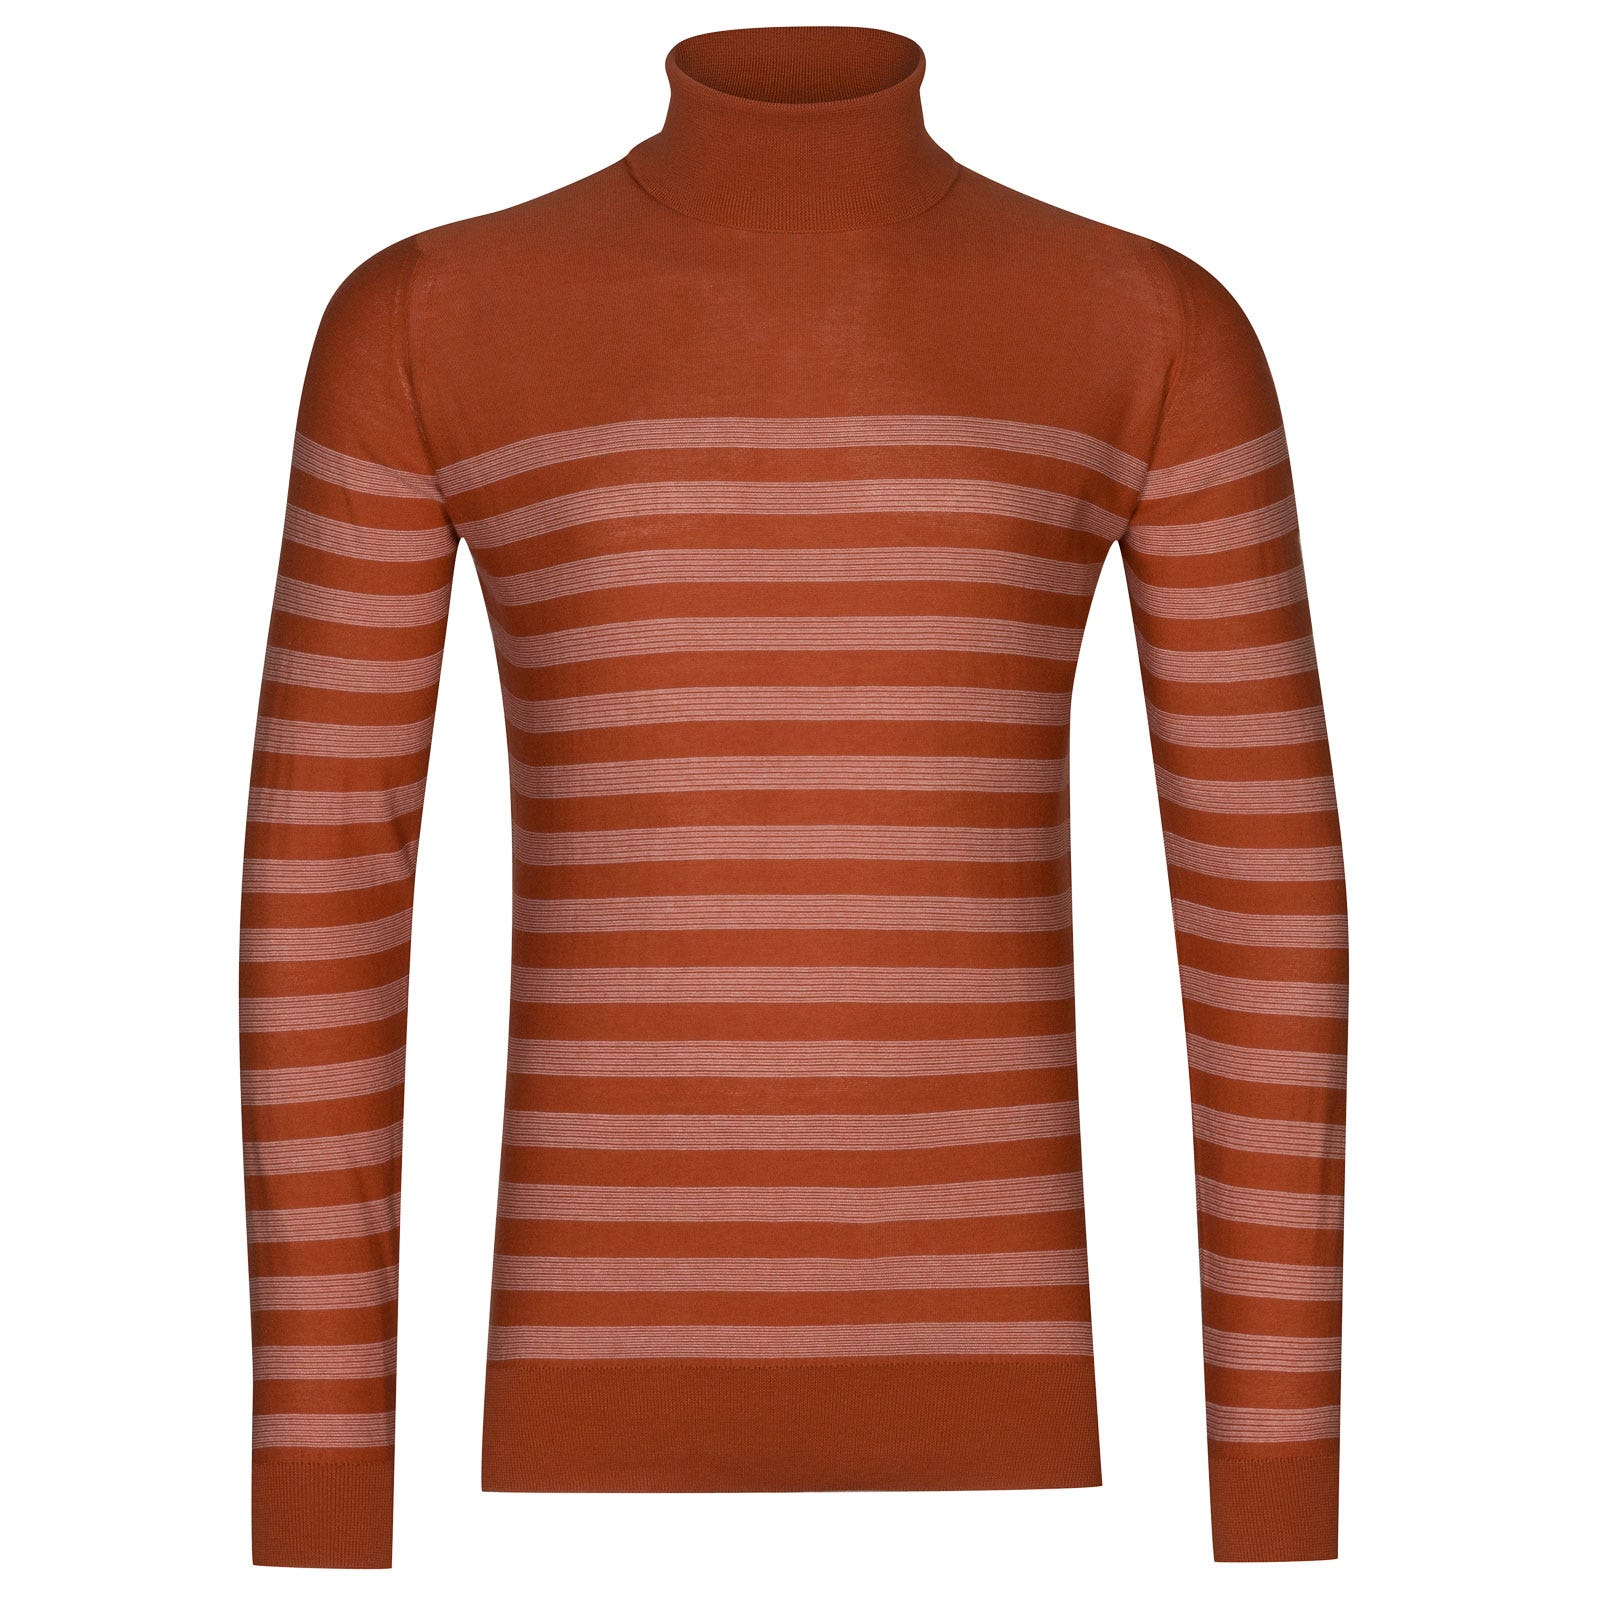 John Smedley tenby Sea Island Cotton Sweater in Flare Orange/White-XL